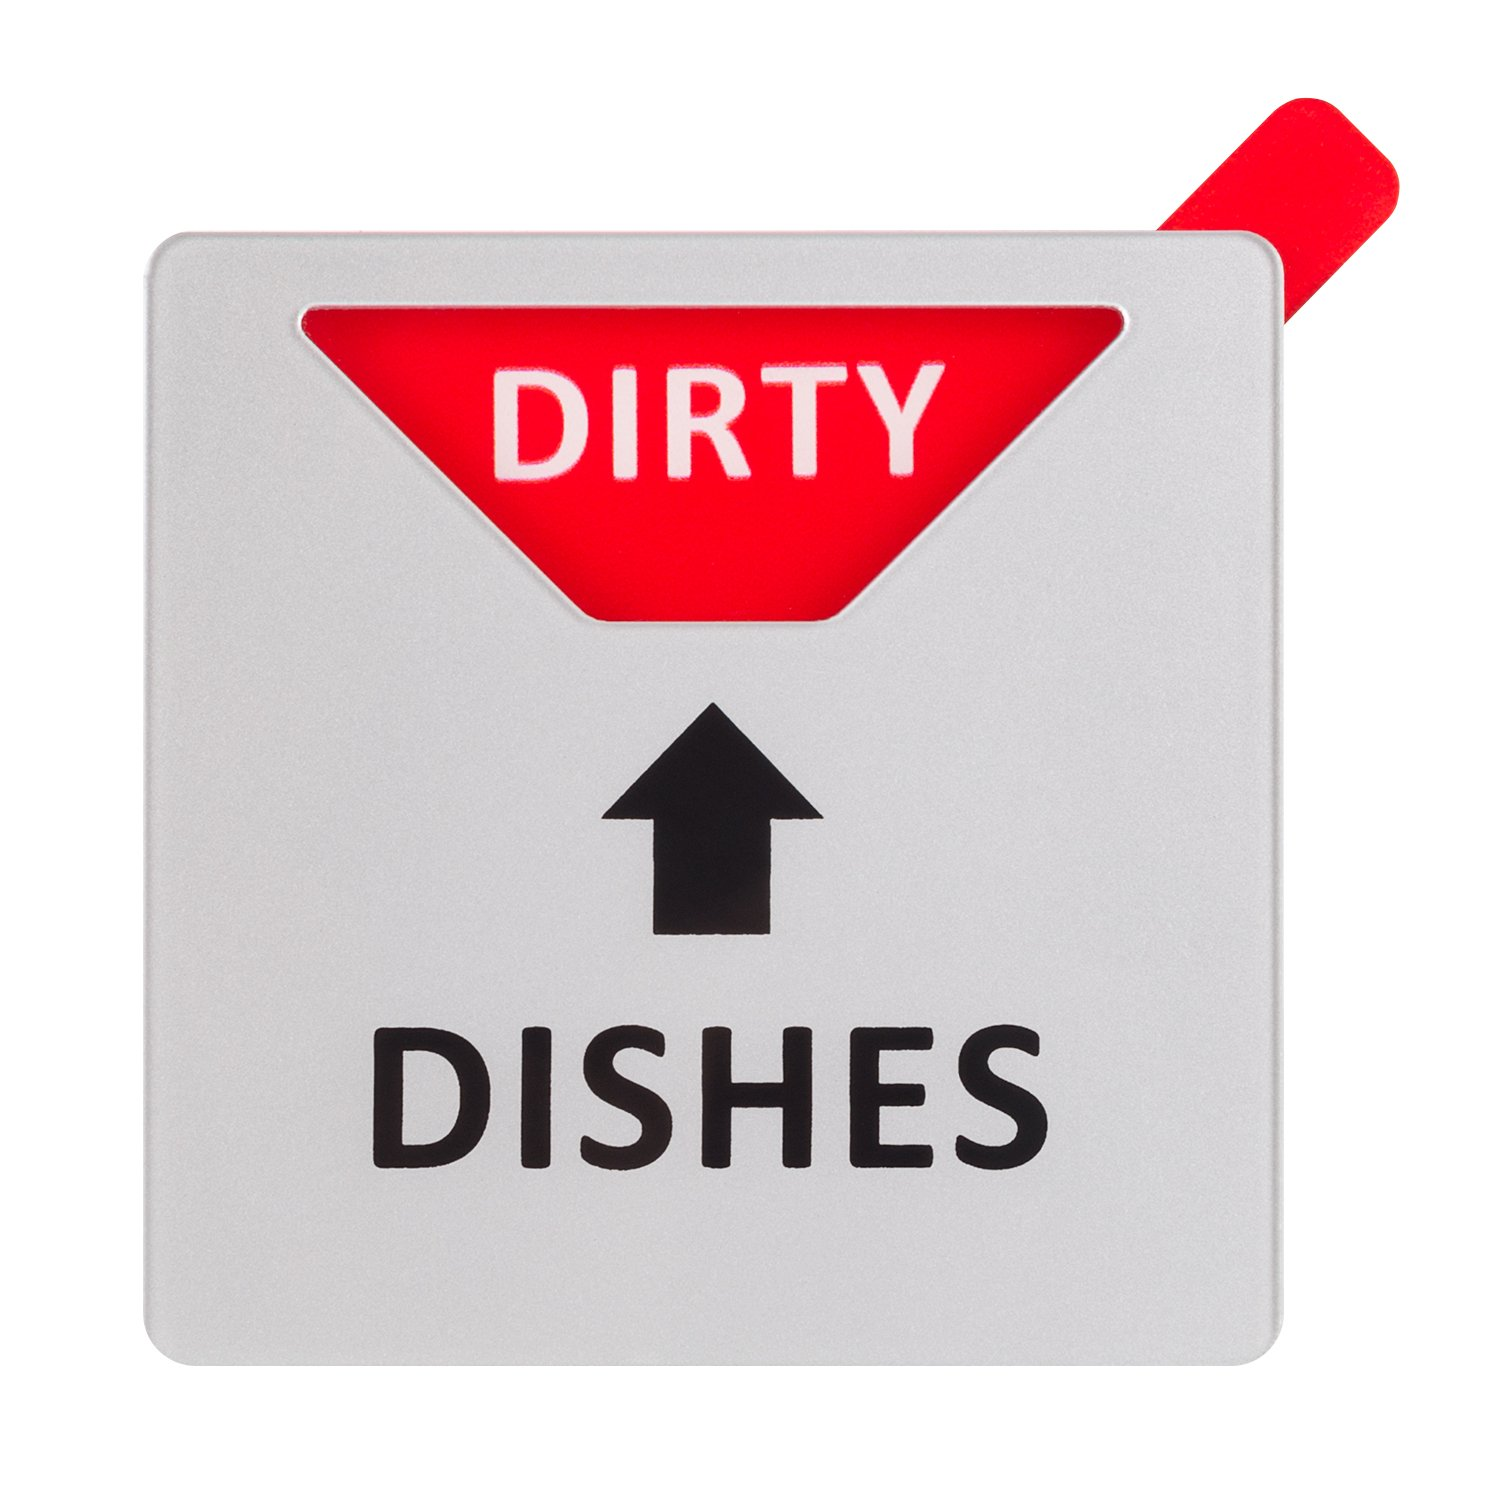 """Kichwit Dishwasher Magnet Clean Dirty Sign Indicator, Works on All Dishwashers, Non-Scratch Strong Magnetic Backing, Residue Free Adhesive Included, 3.1"""" x 3.1"""", Silver, Square Shaped"""